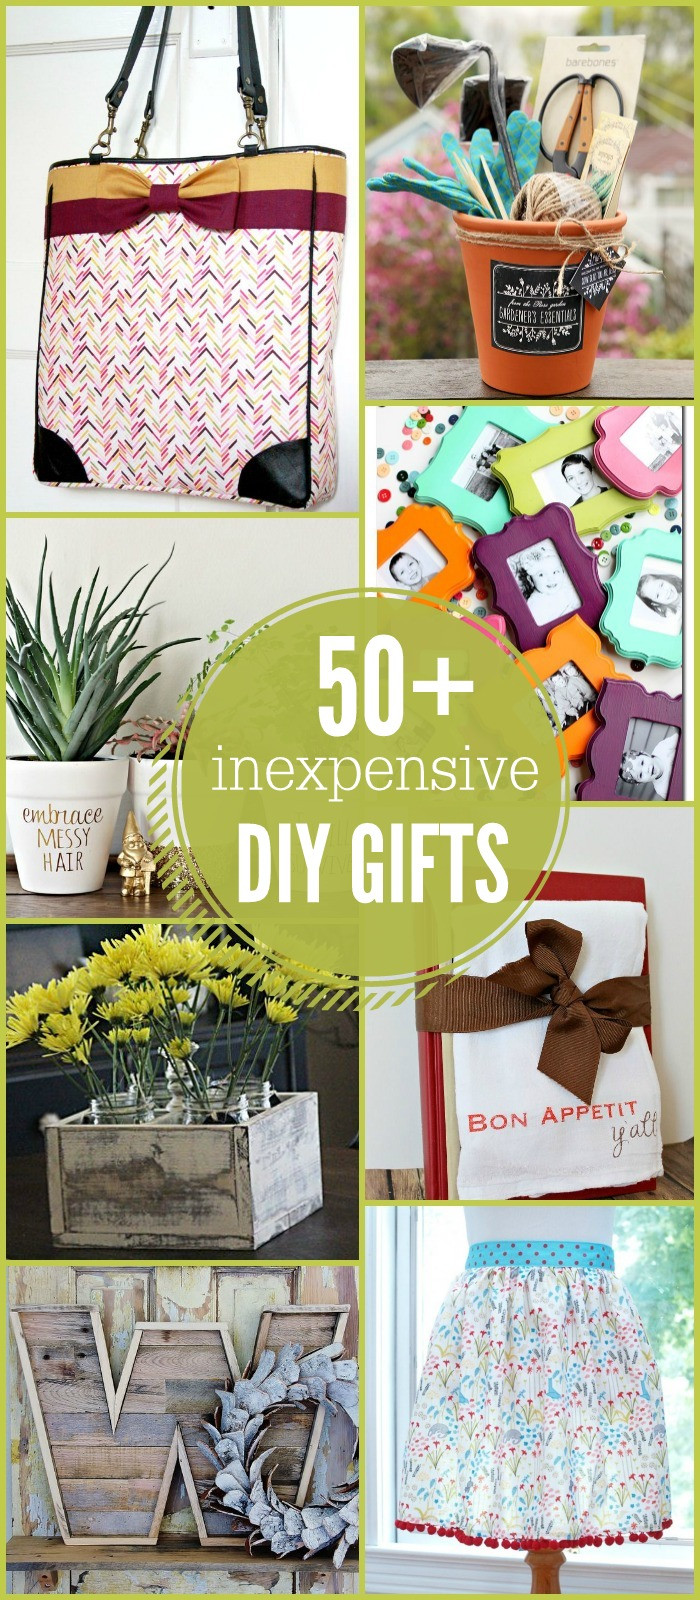 Best ideas about Cheap Gift Ideas . Save or Pin 50 Inexpensive DIY Gift Ideas Now.